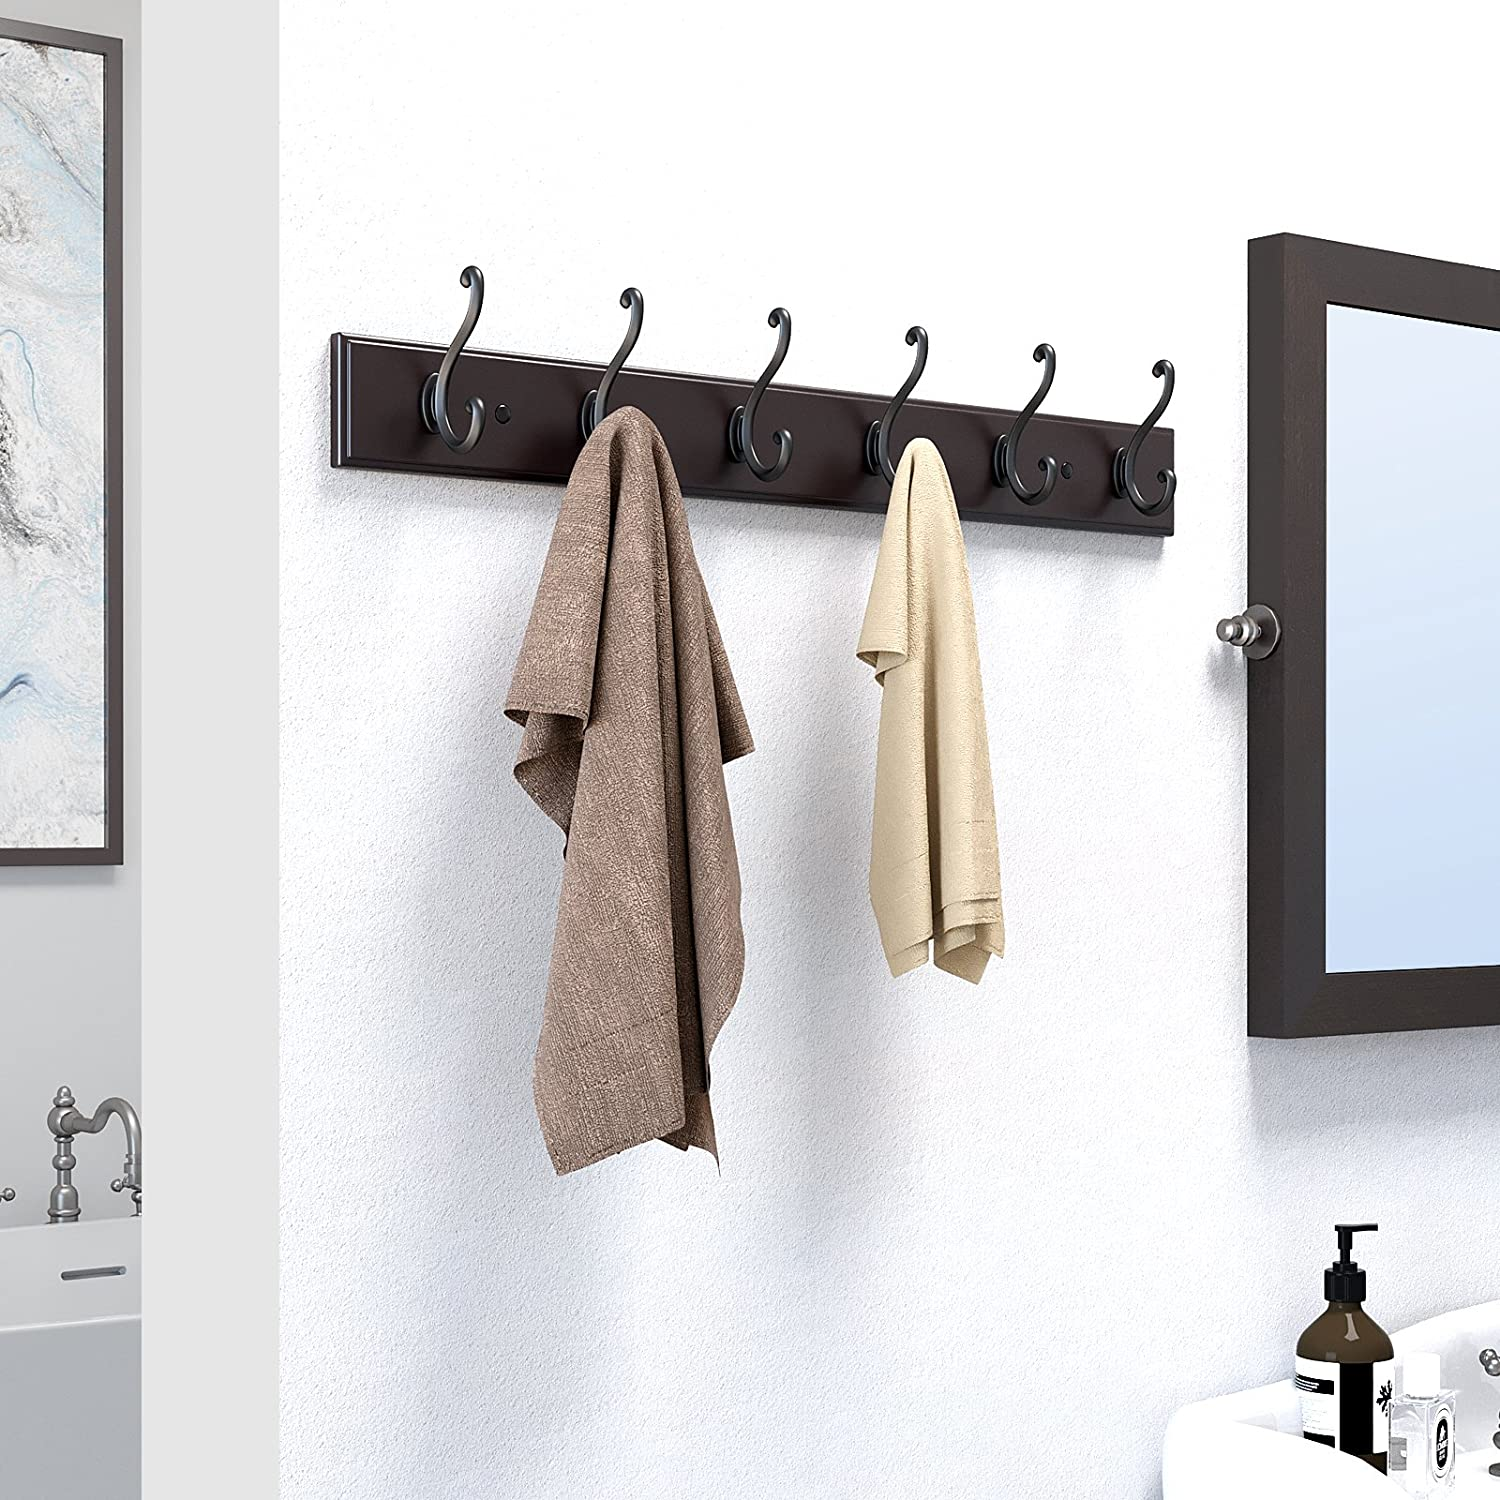 Amazoncom Songmics Wooden Wall Mounted Coat Rack, Hook Rail With